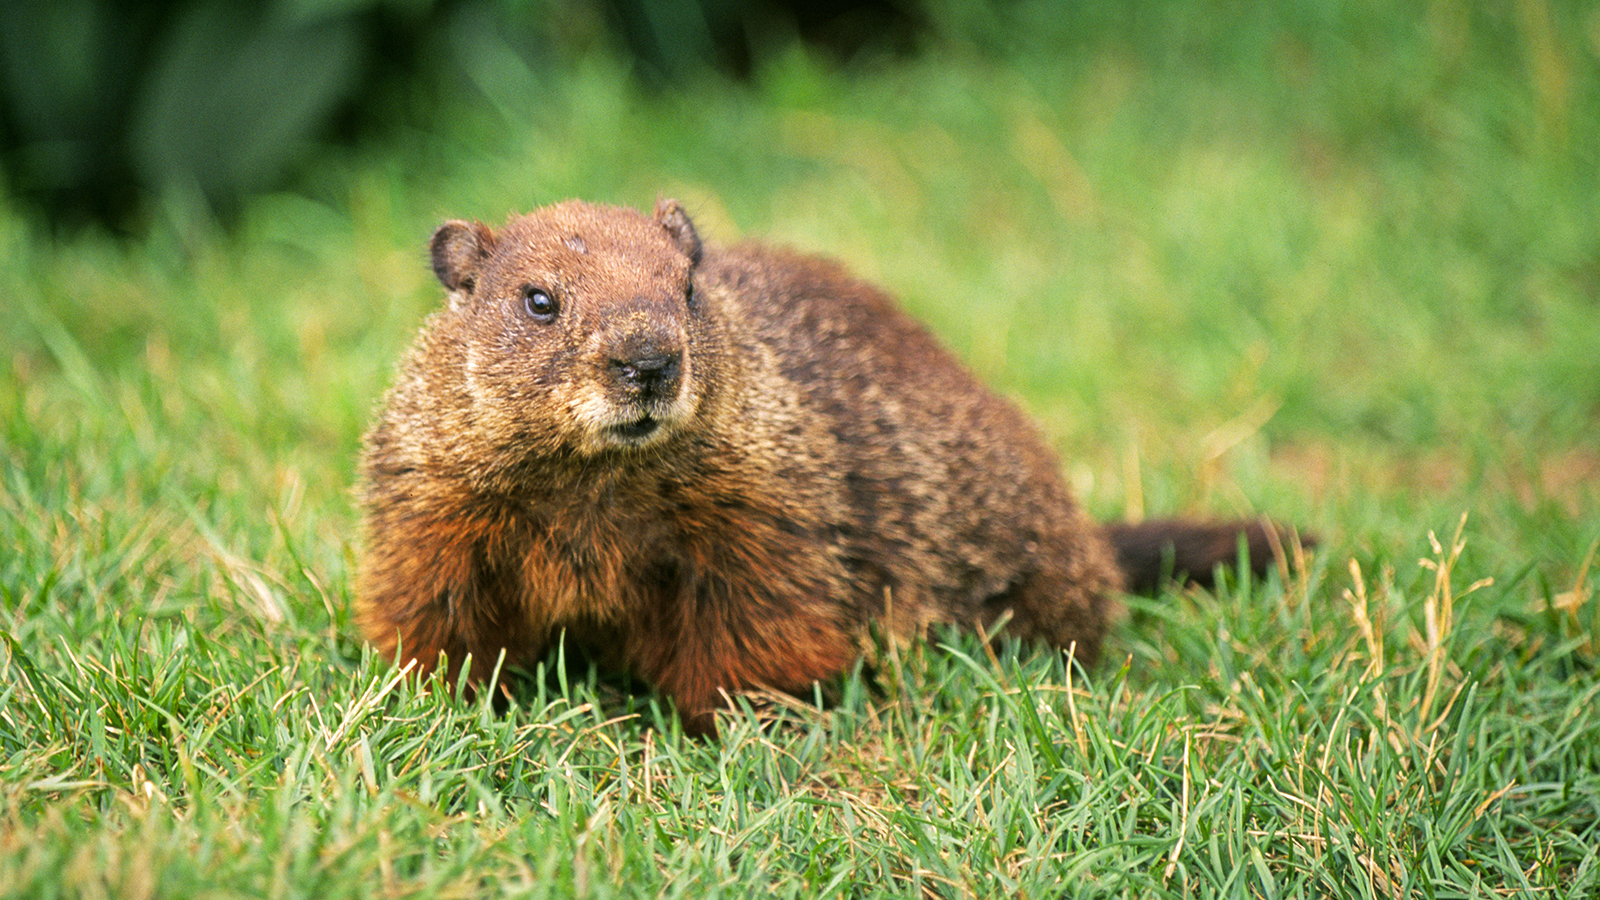 Groundhogs The Next Thing Groundhogs Plus The Whole Story